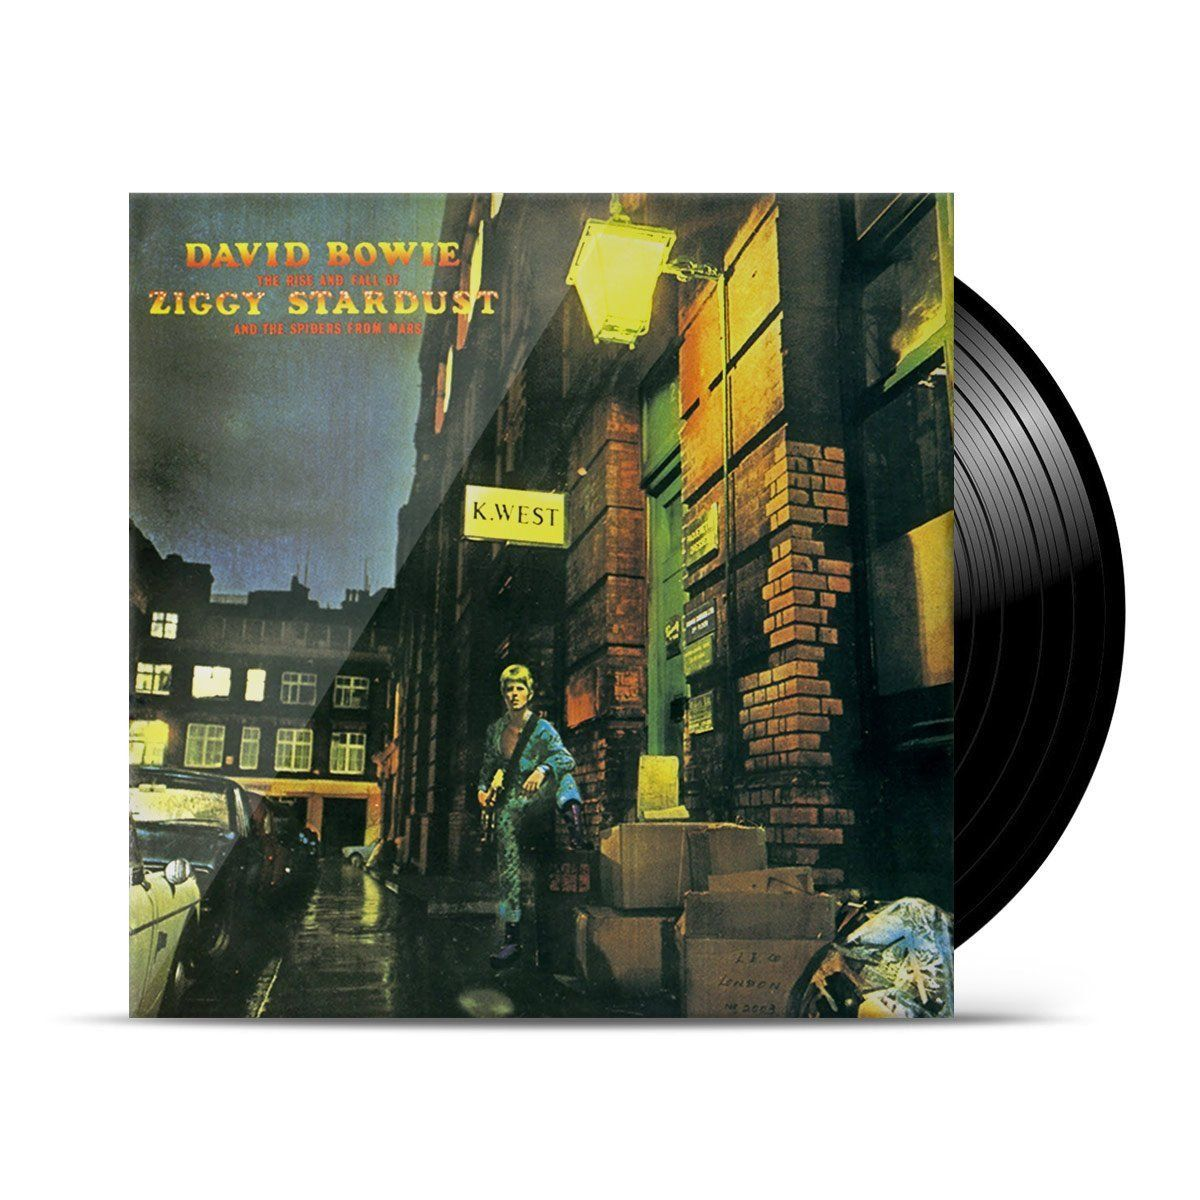 LP David Bowie The Rise And Fall Of Ziggy Stardust And The Spiders From Mars  - bandUP Store Marketplace